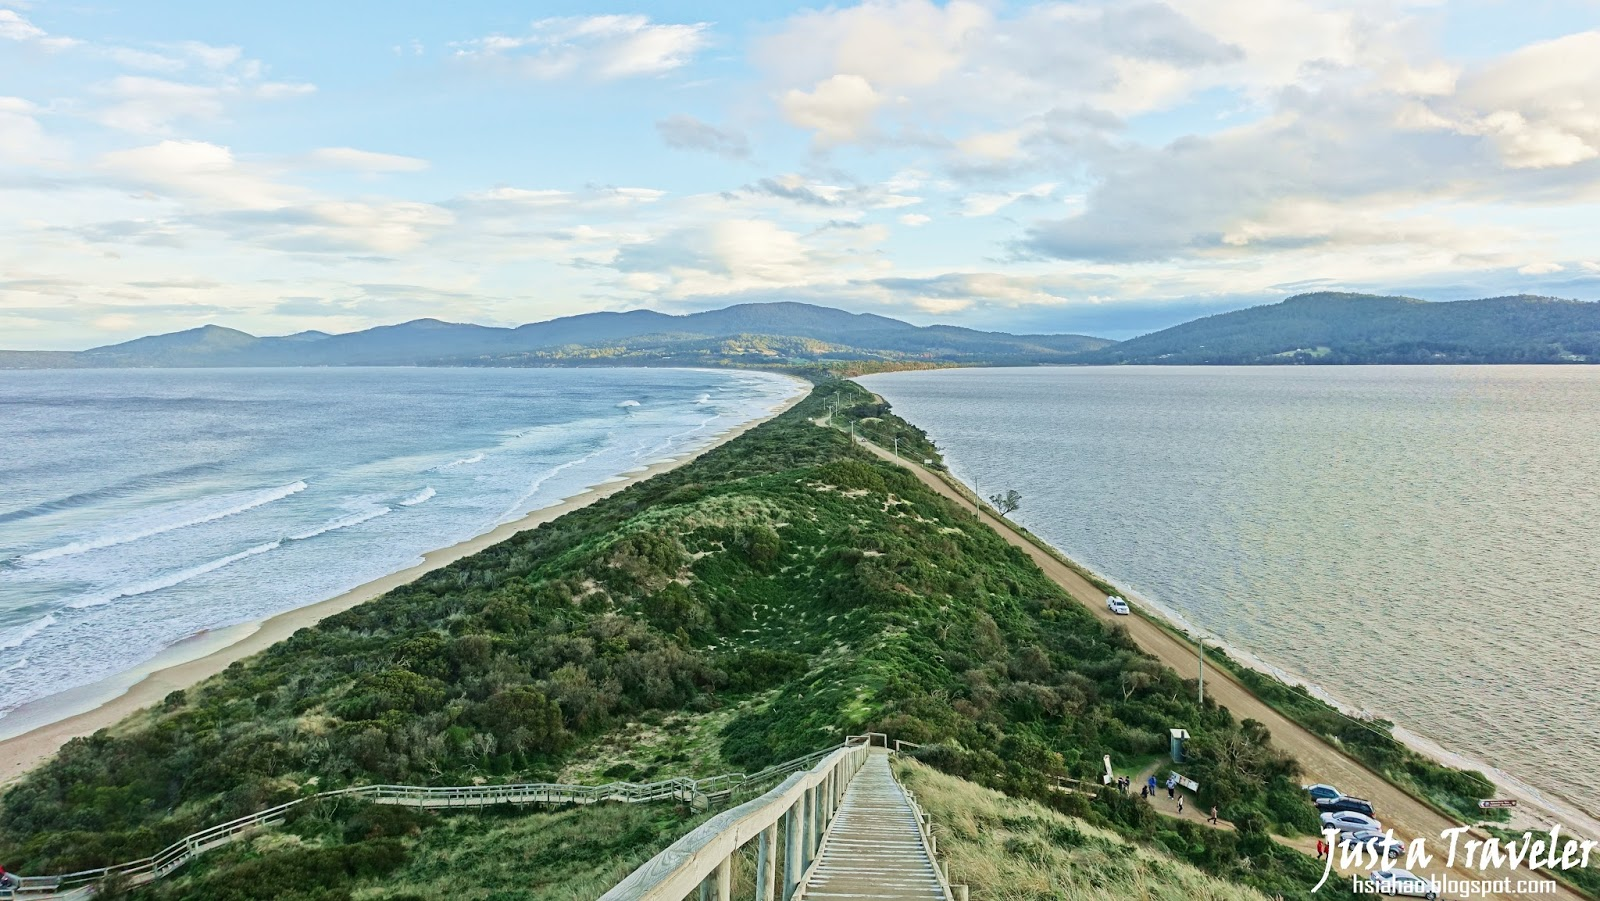 塔斯馬尼亞-景點-推薦-布魯尼島-Bruny-Island-The-Neck-澳洲-Tasmania-Tourist-Attraction-Australia